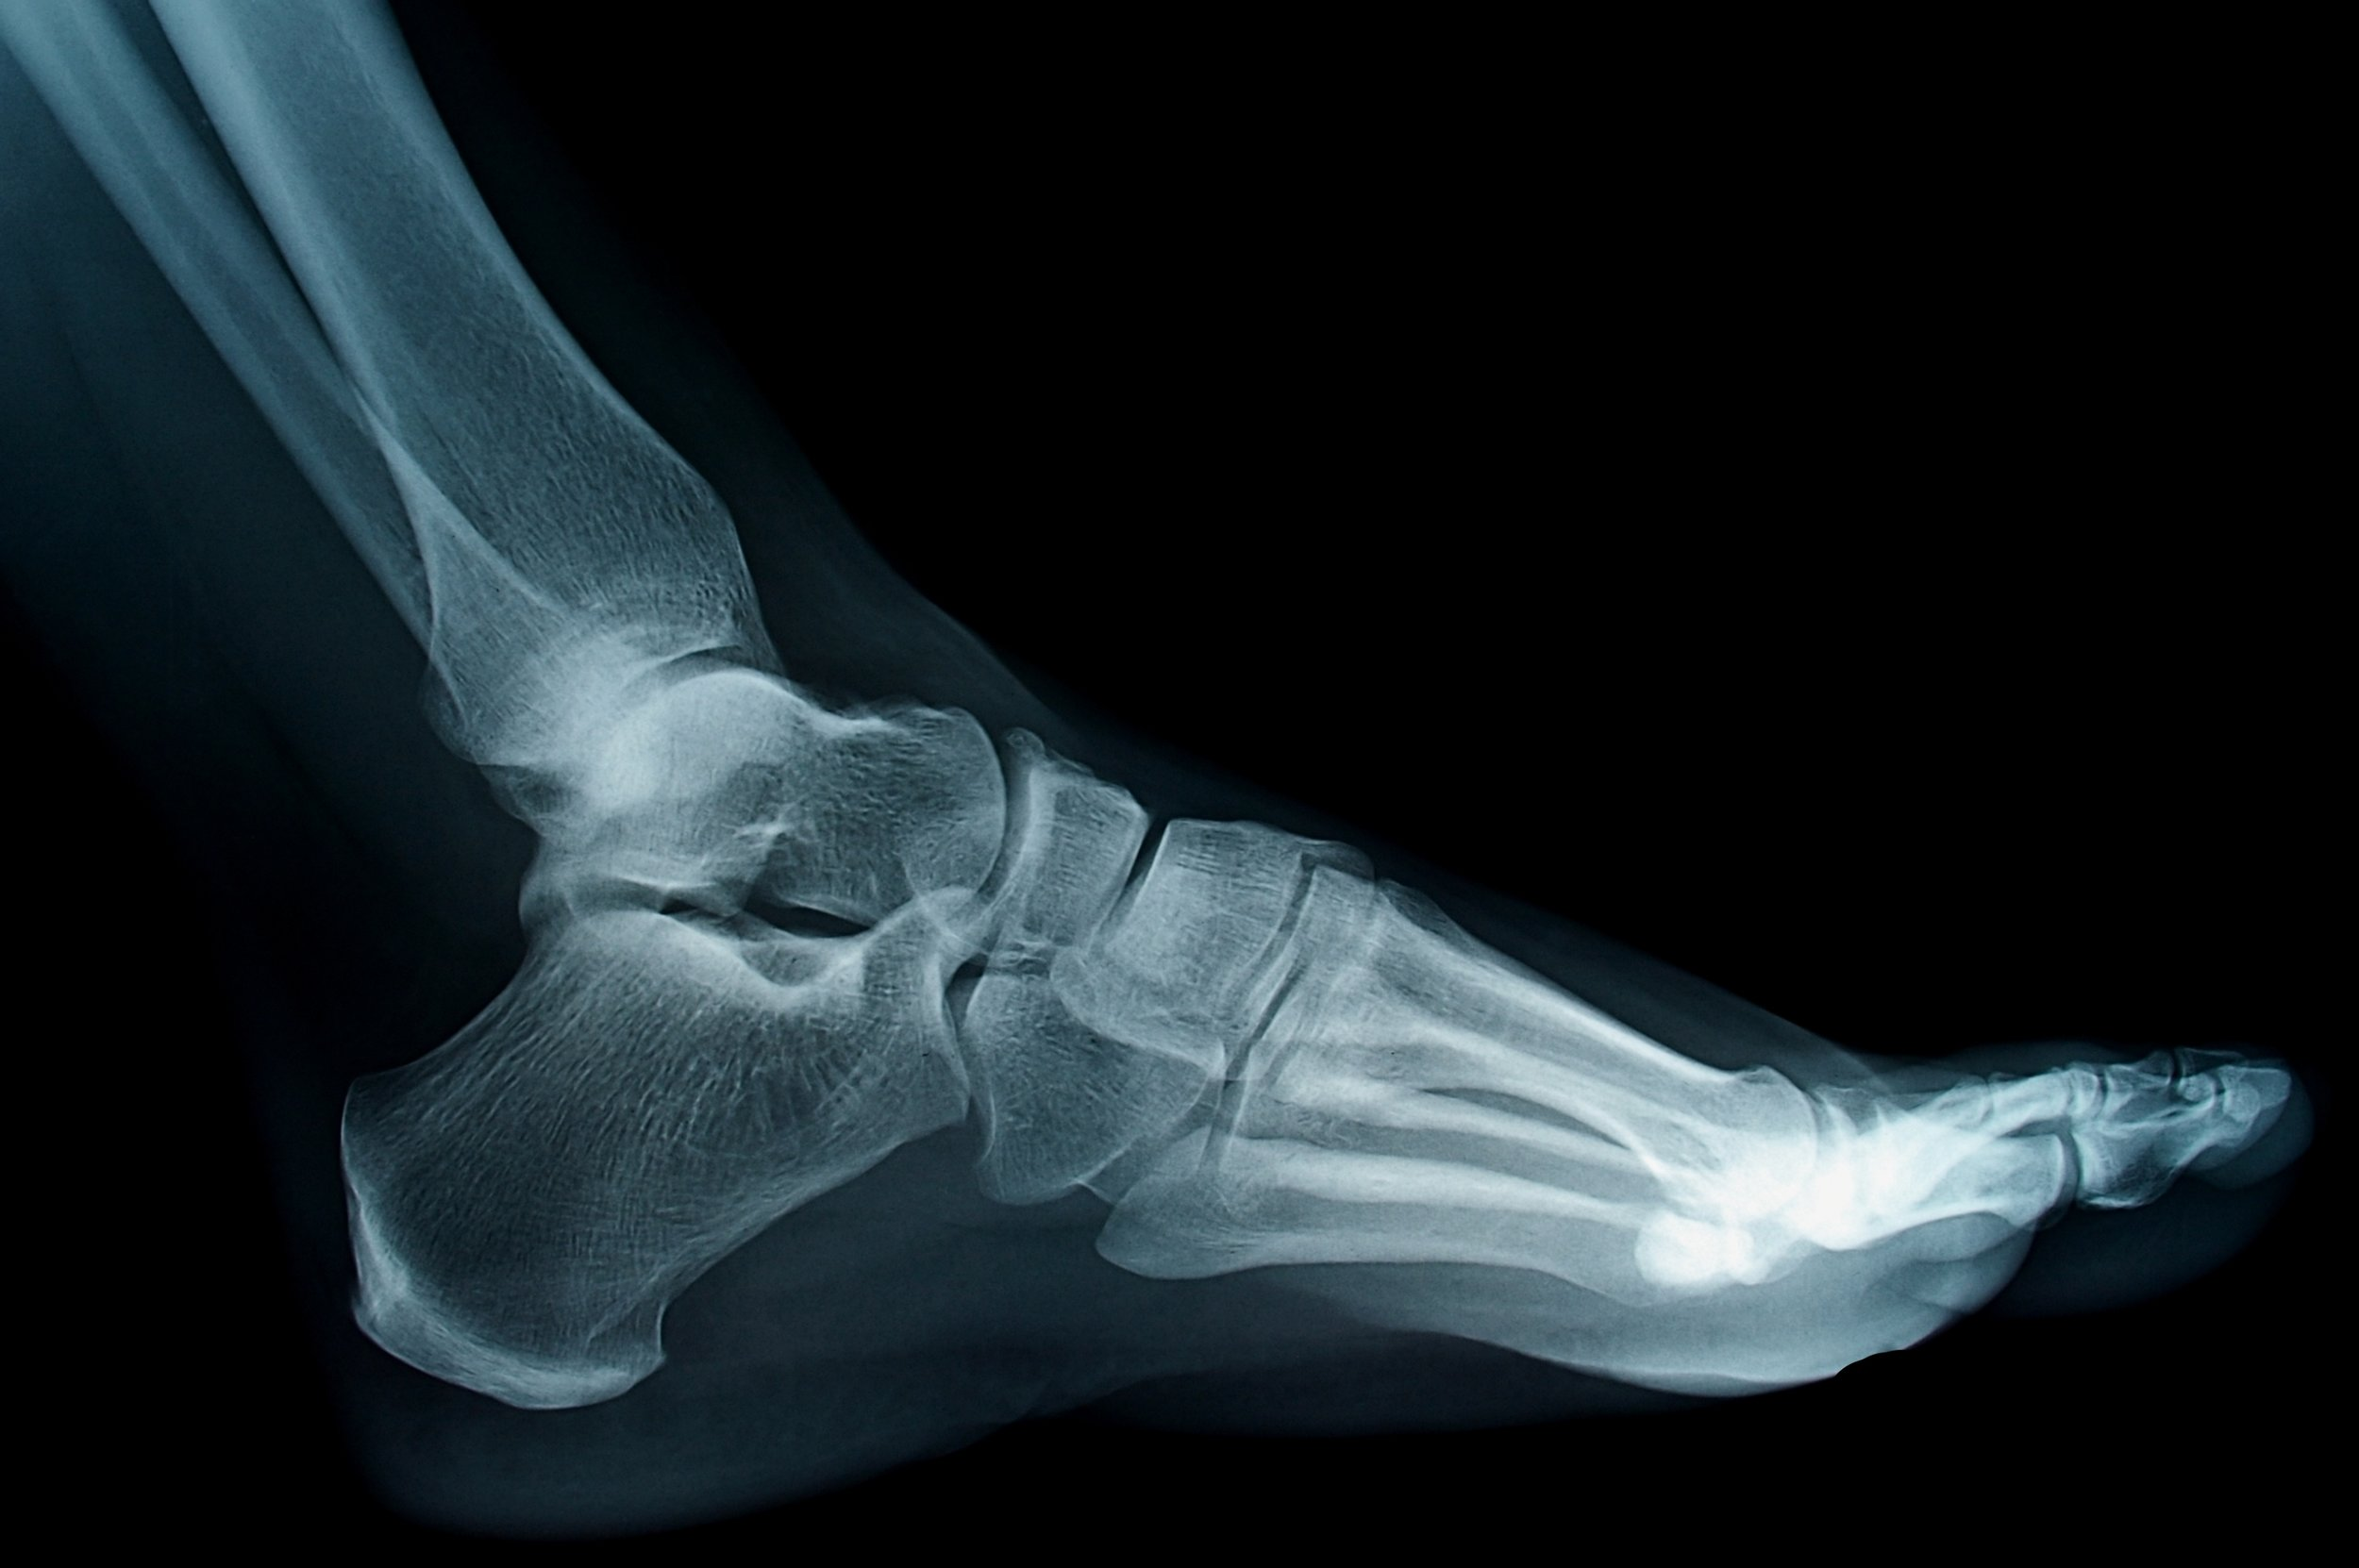 podiatrist treats foot fracture, broken toe and ankle fracture